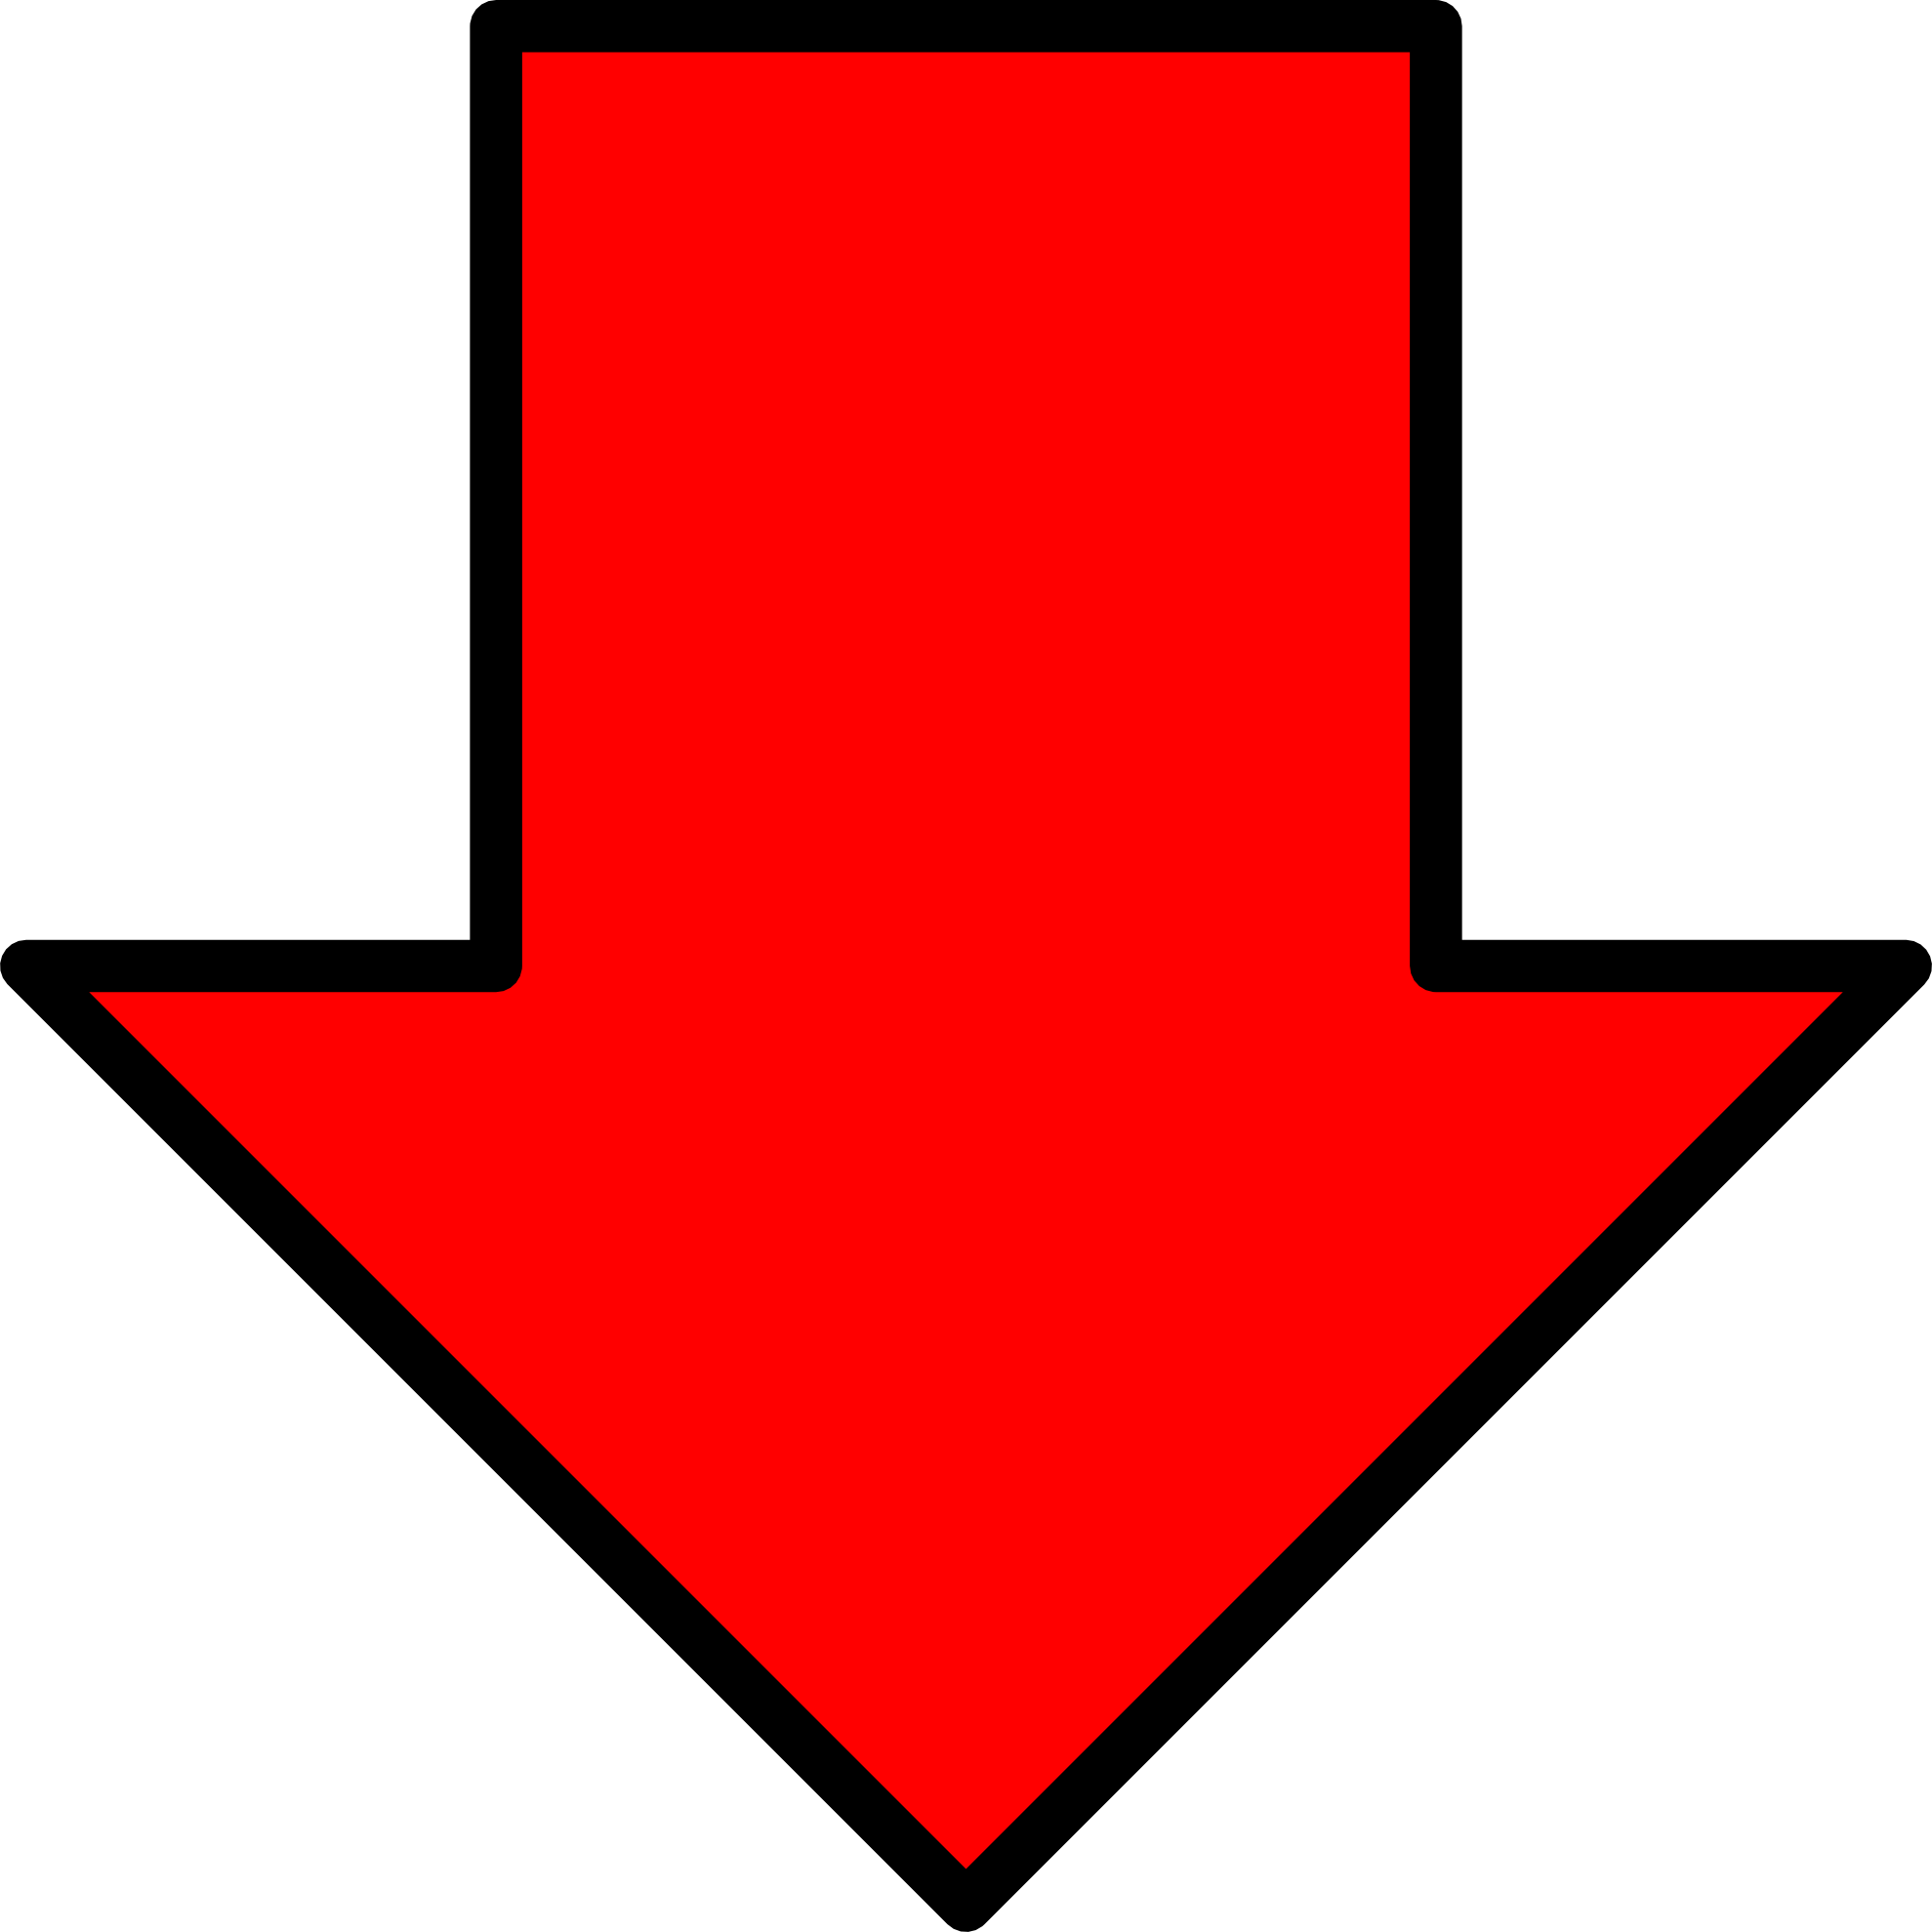 Red Arrow Down Png image #4740